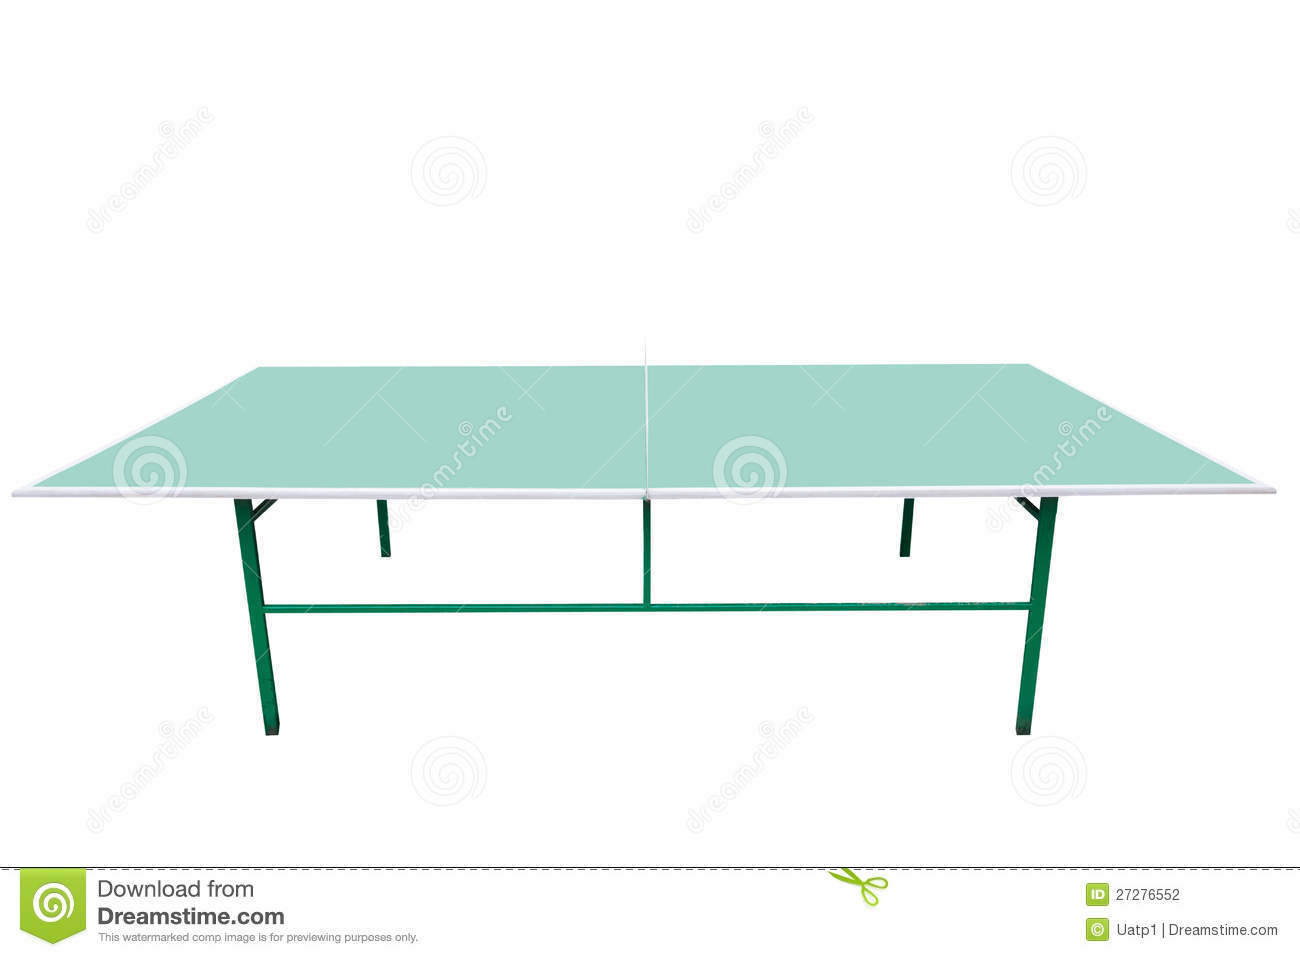 Ping-pongtabell